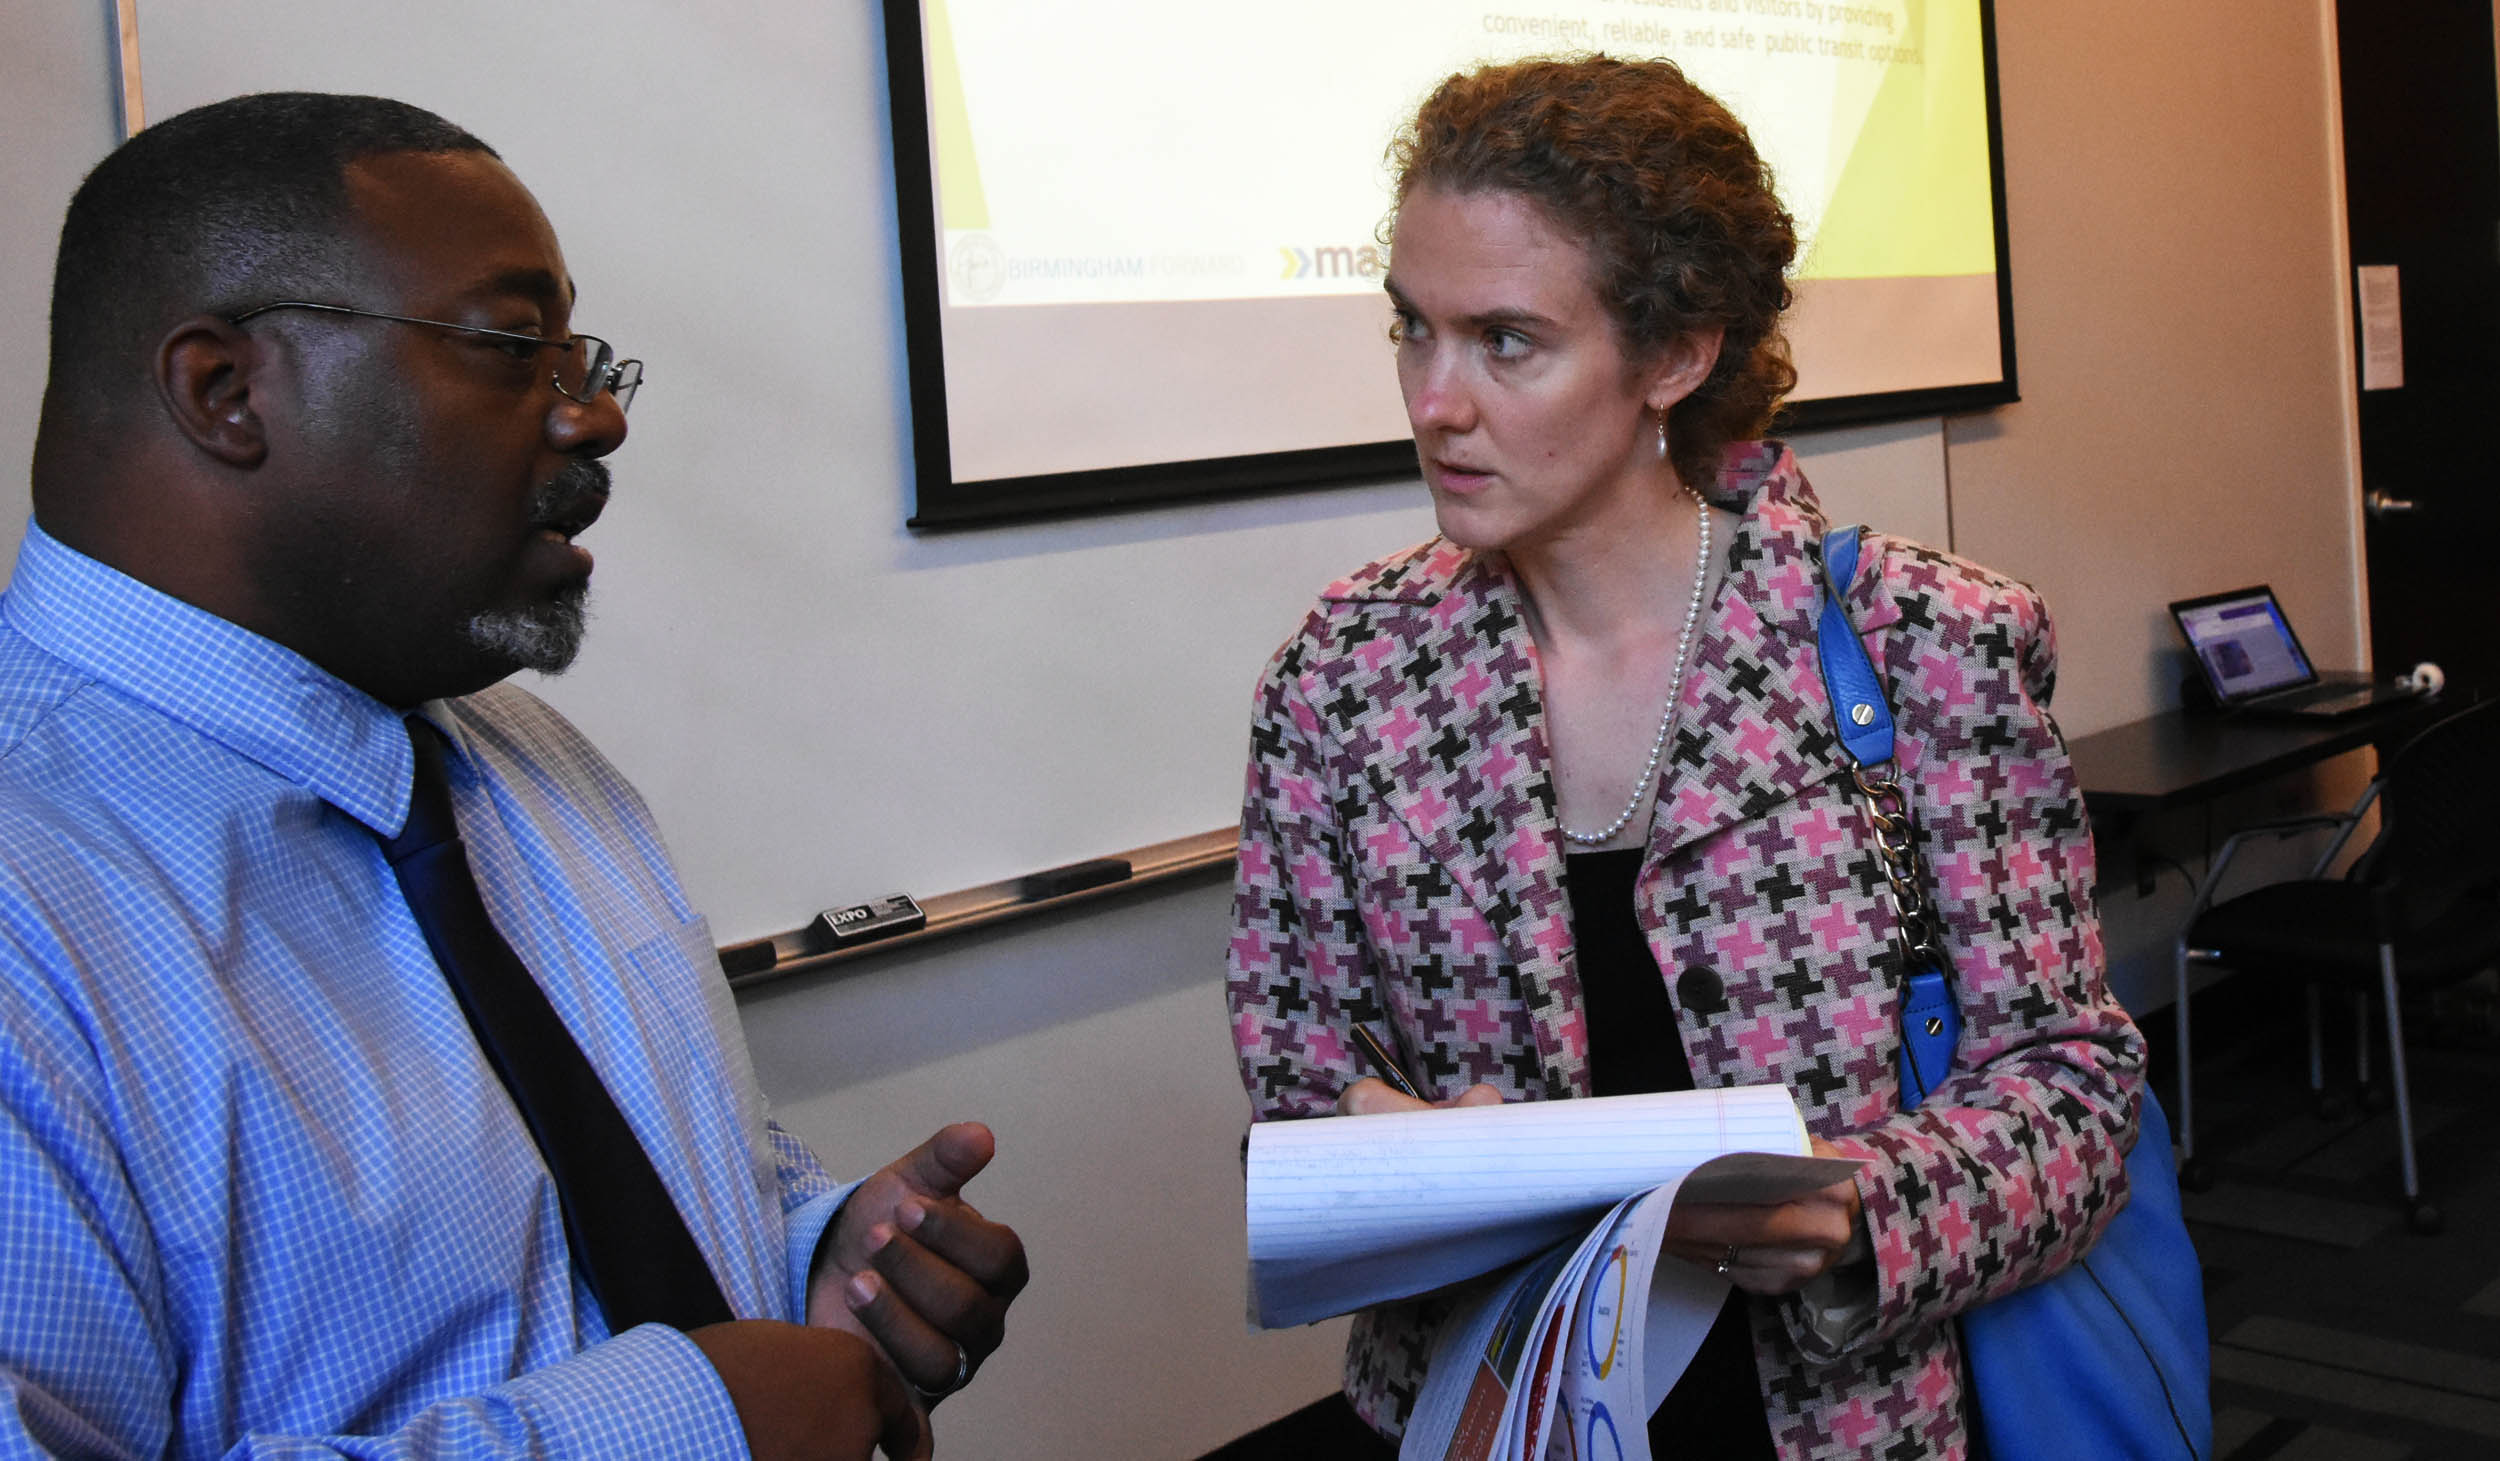 Darrell Howard talks with Sarah Stokes of Southern Environmental Law Center. (Solomon Crenshaw Jr., special to The Times)